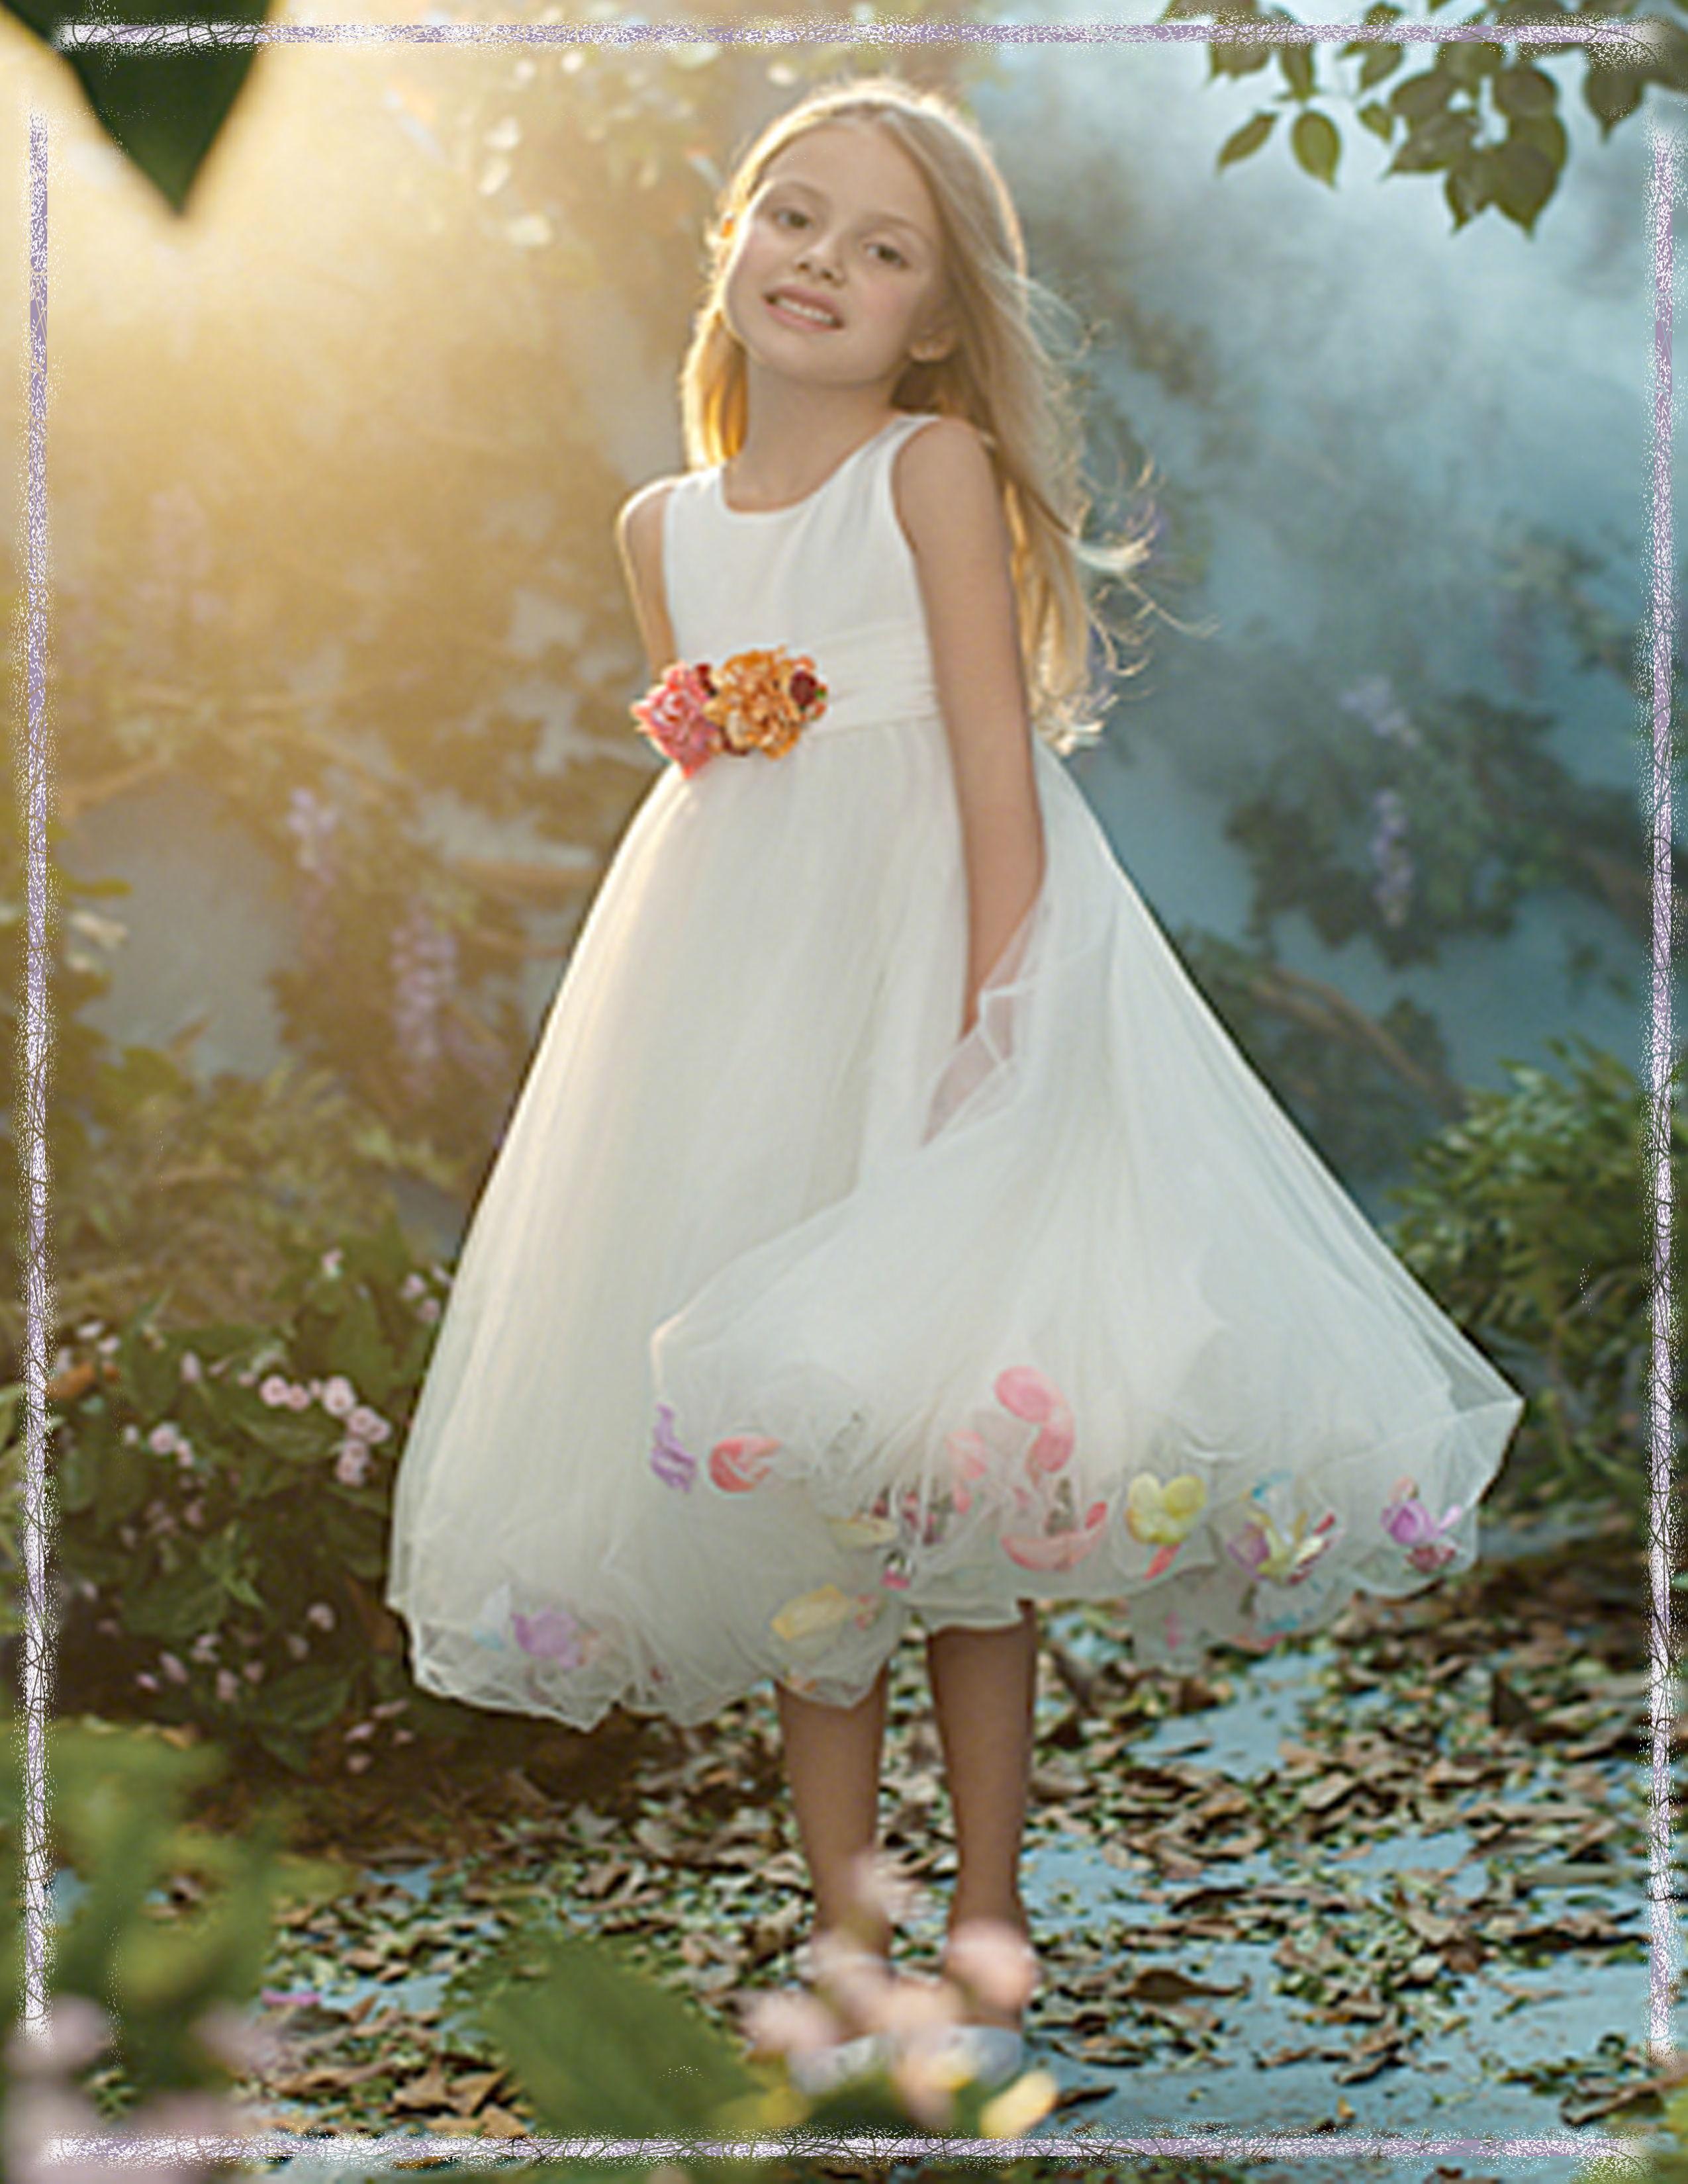 Flower girl dresses fit for a princess eterneltresor flower girls dresses enjoy aa6 aa1 aa2 aa3 aa4 aa5 mightylinksfo